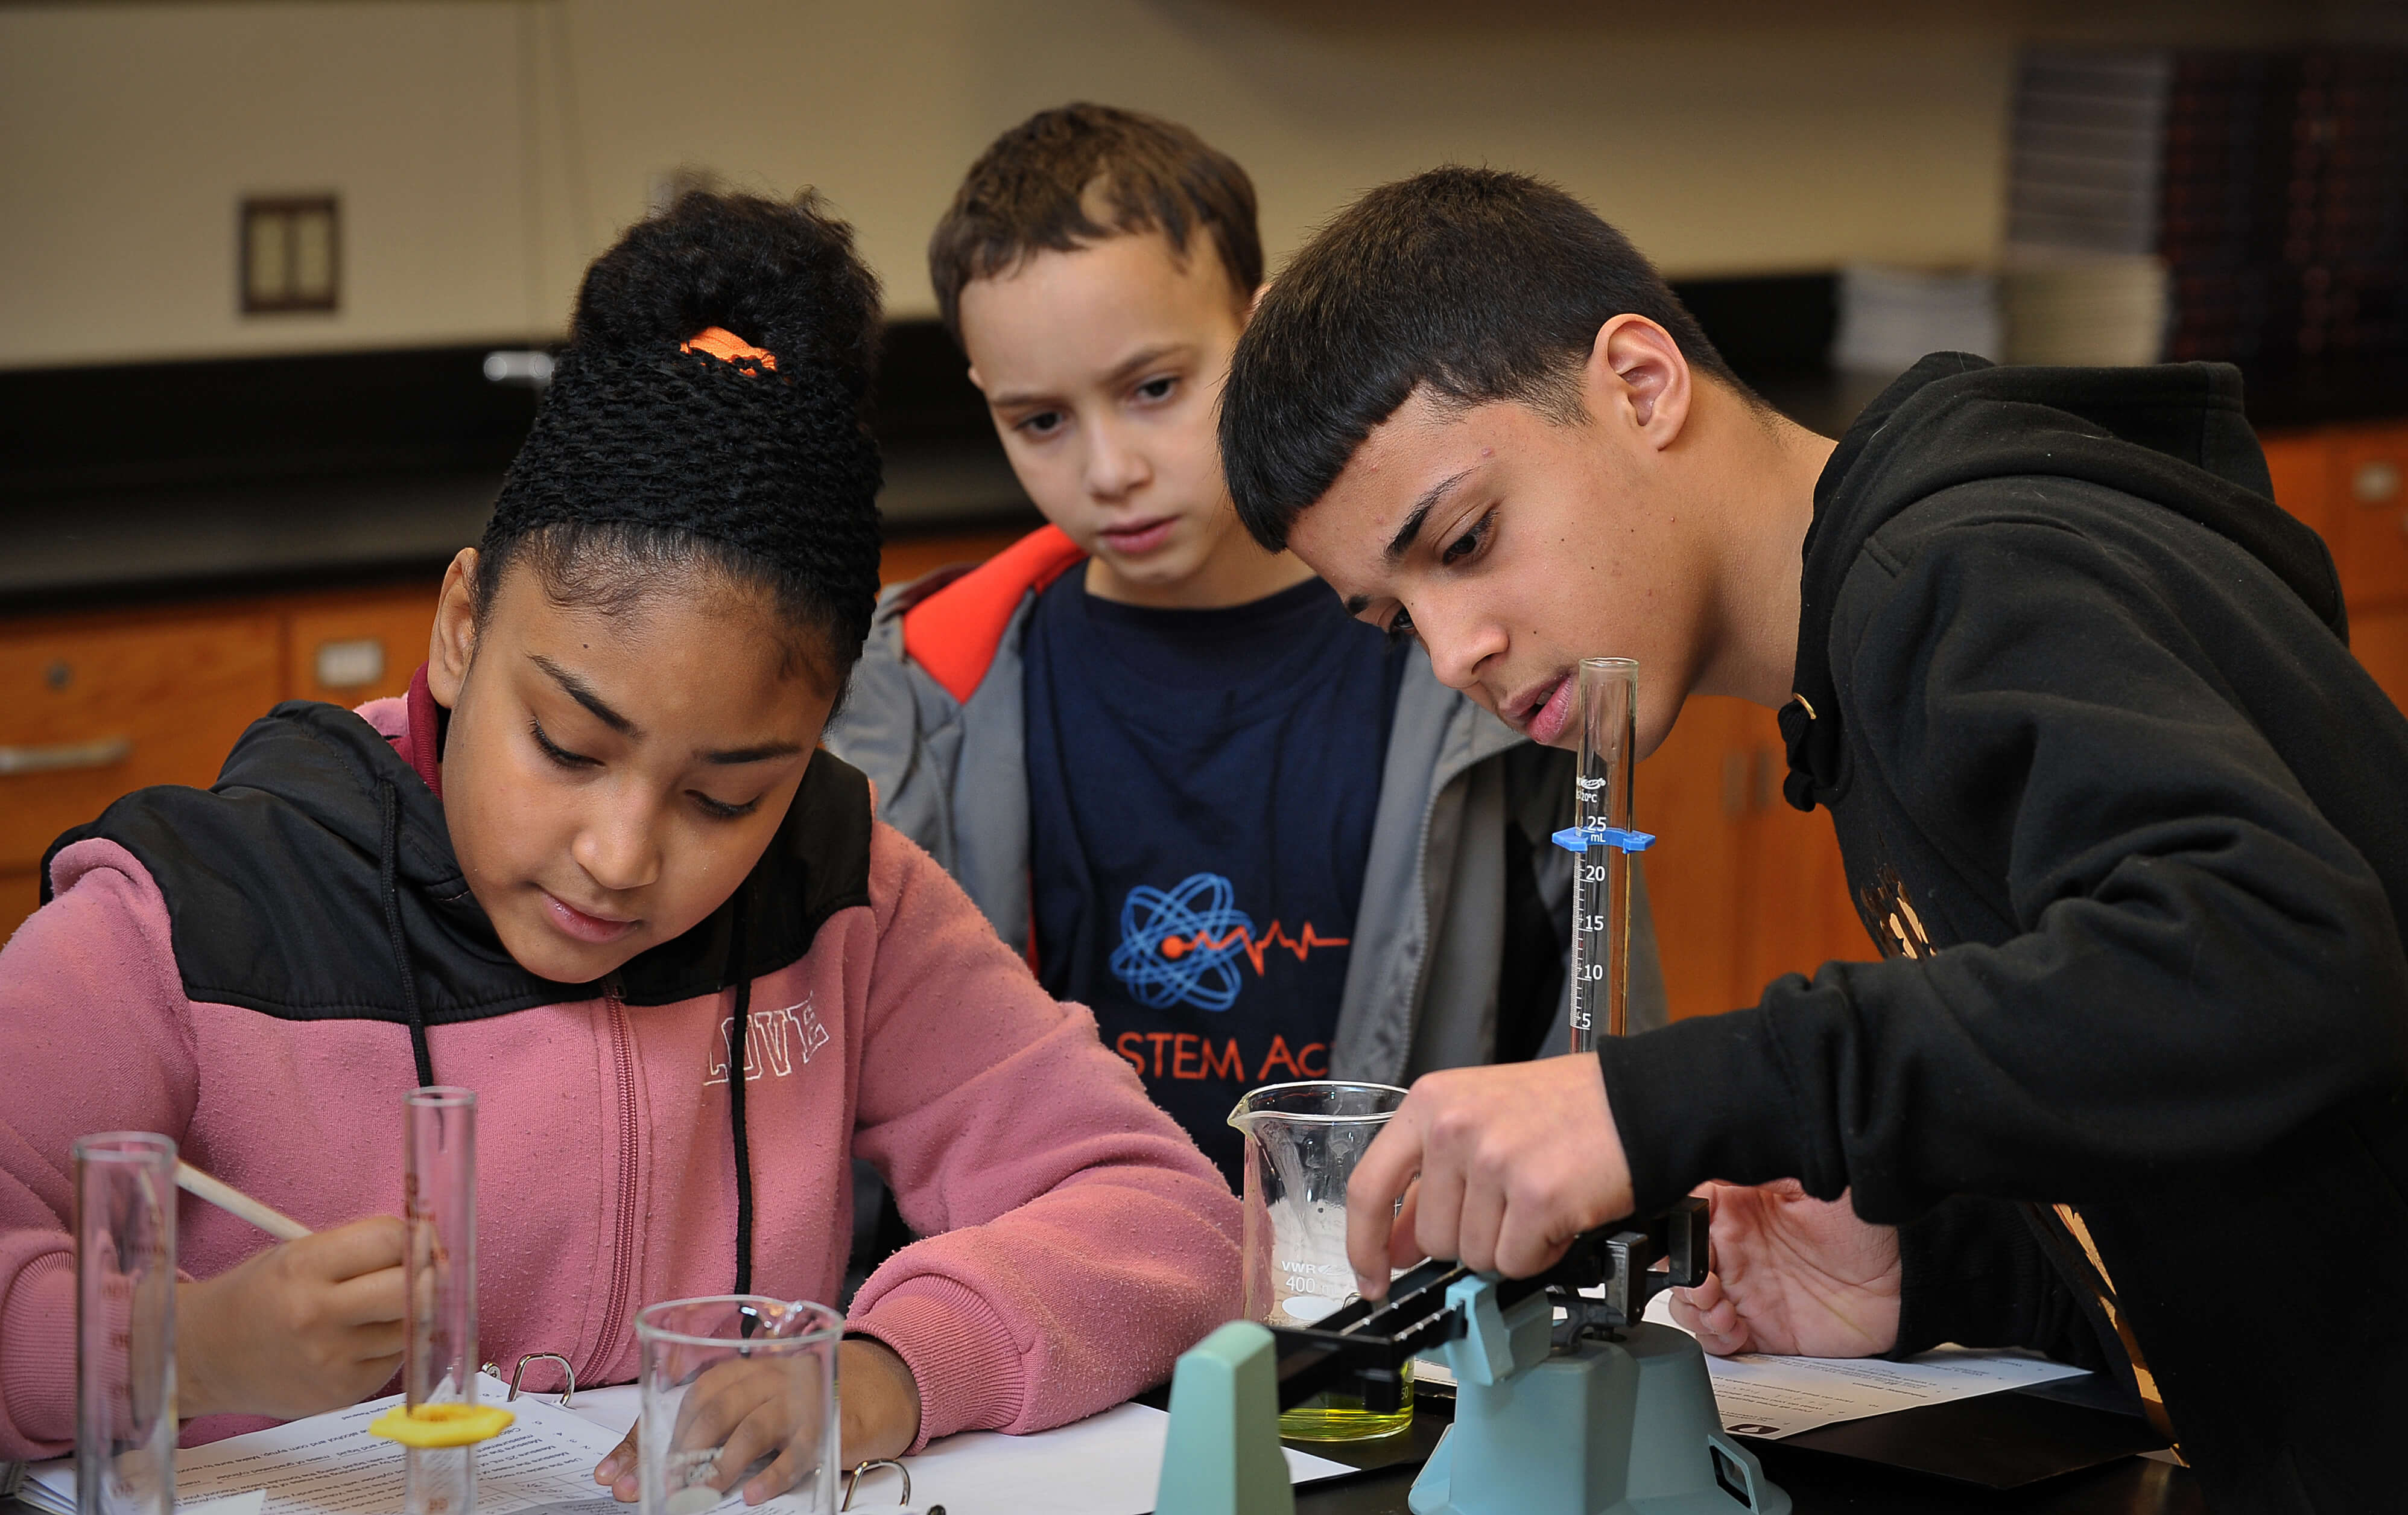 Three students working together with beakers during a science class.